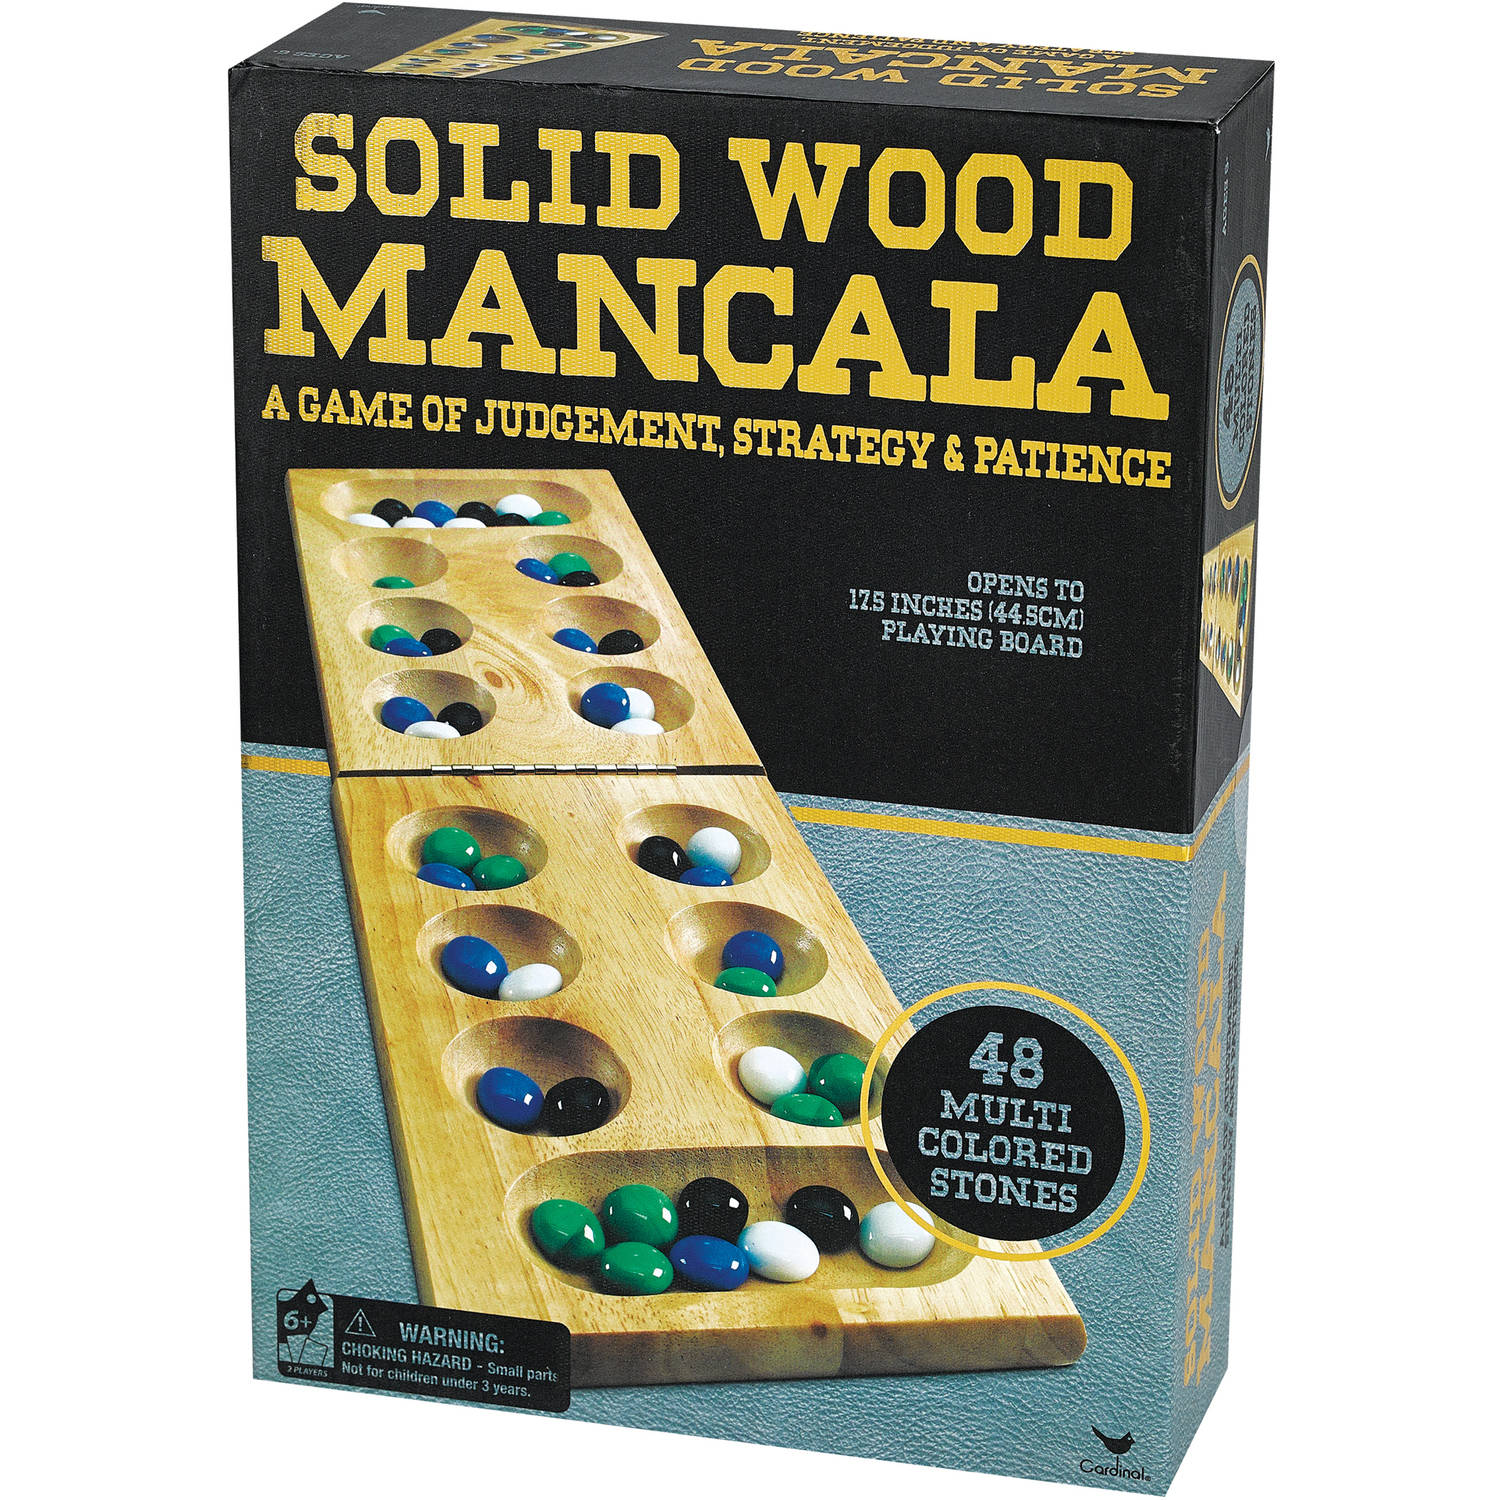 Cardinal Solid Wood Mancala in Gold Foil Box